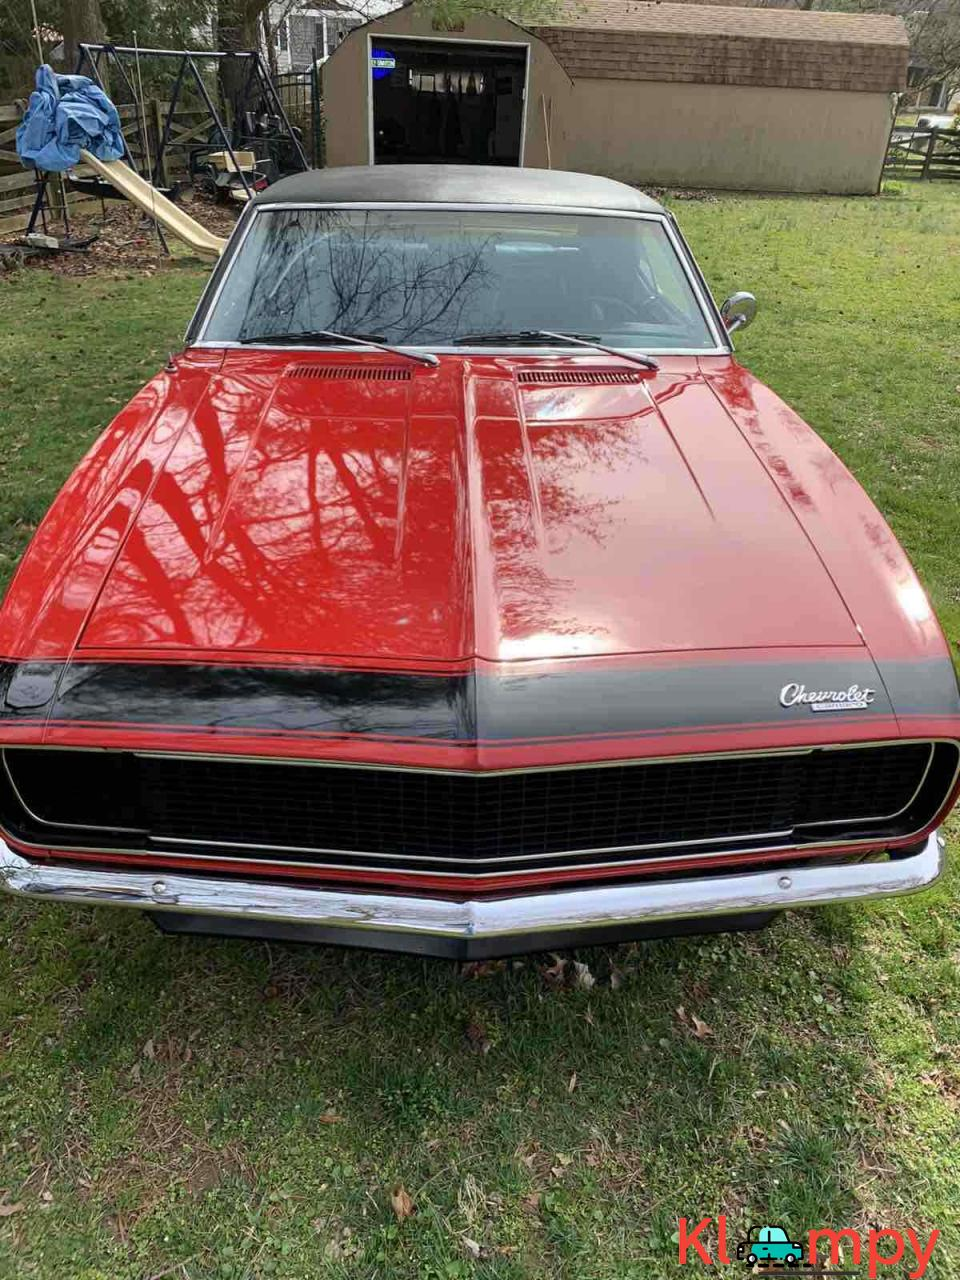 1967 Chevrolet Camaro RS Red RWD - 2/20